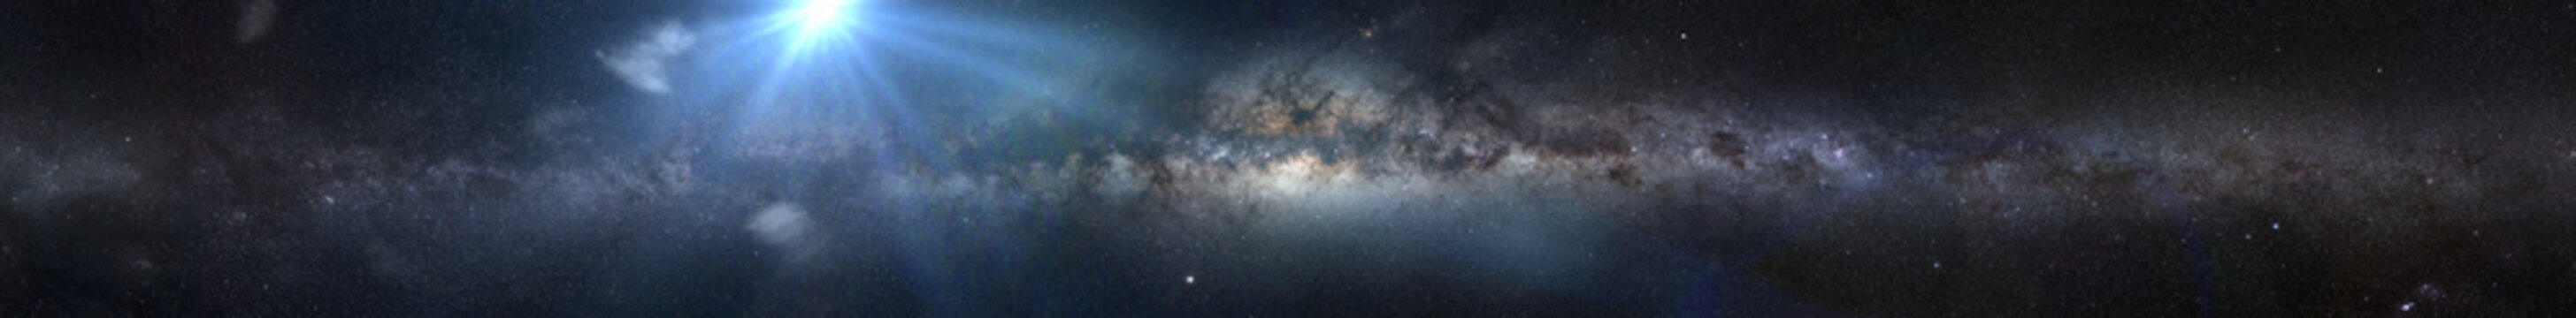 bright star in front the Milky Way galaxy